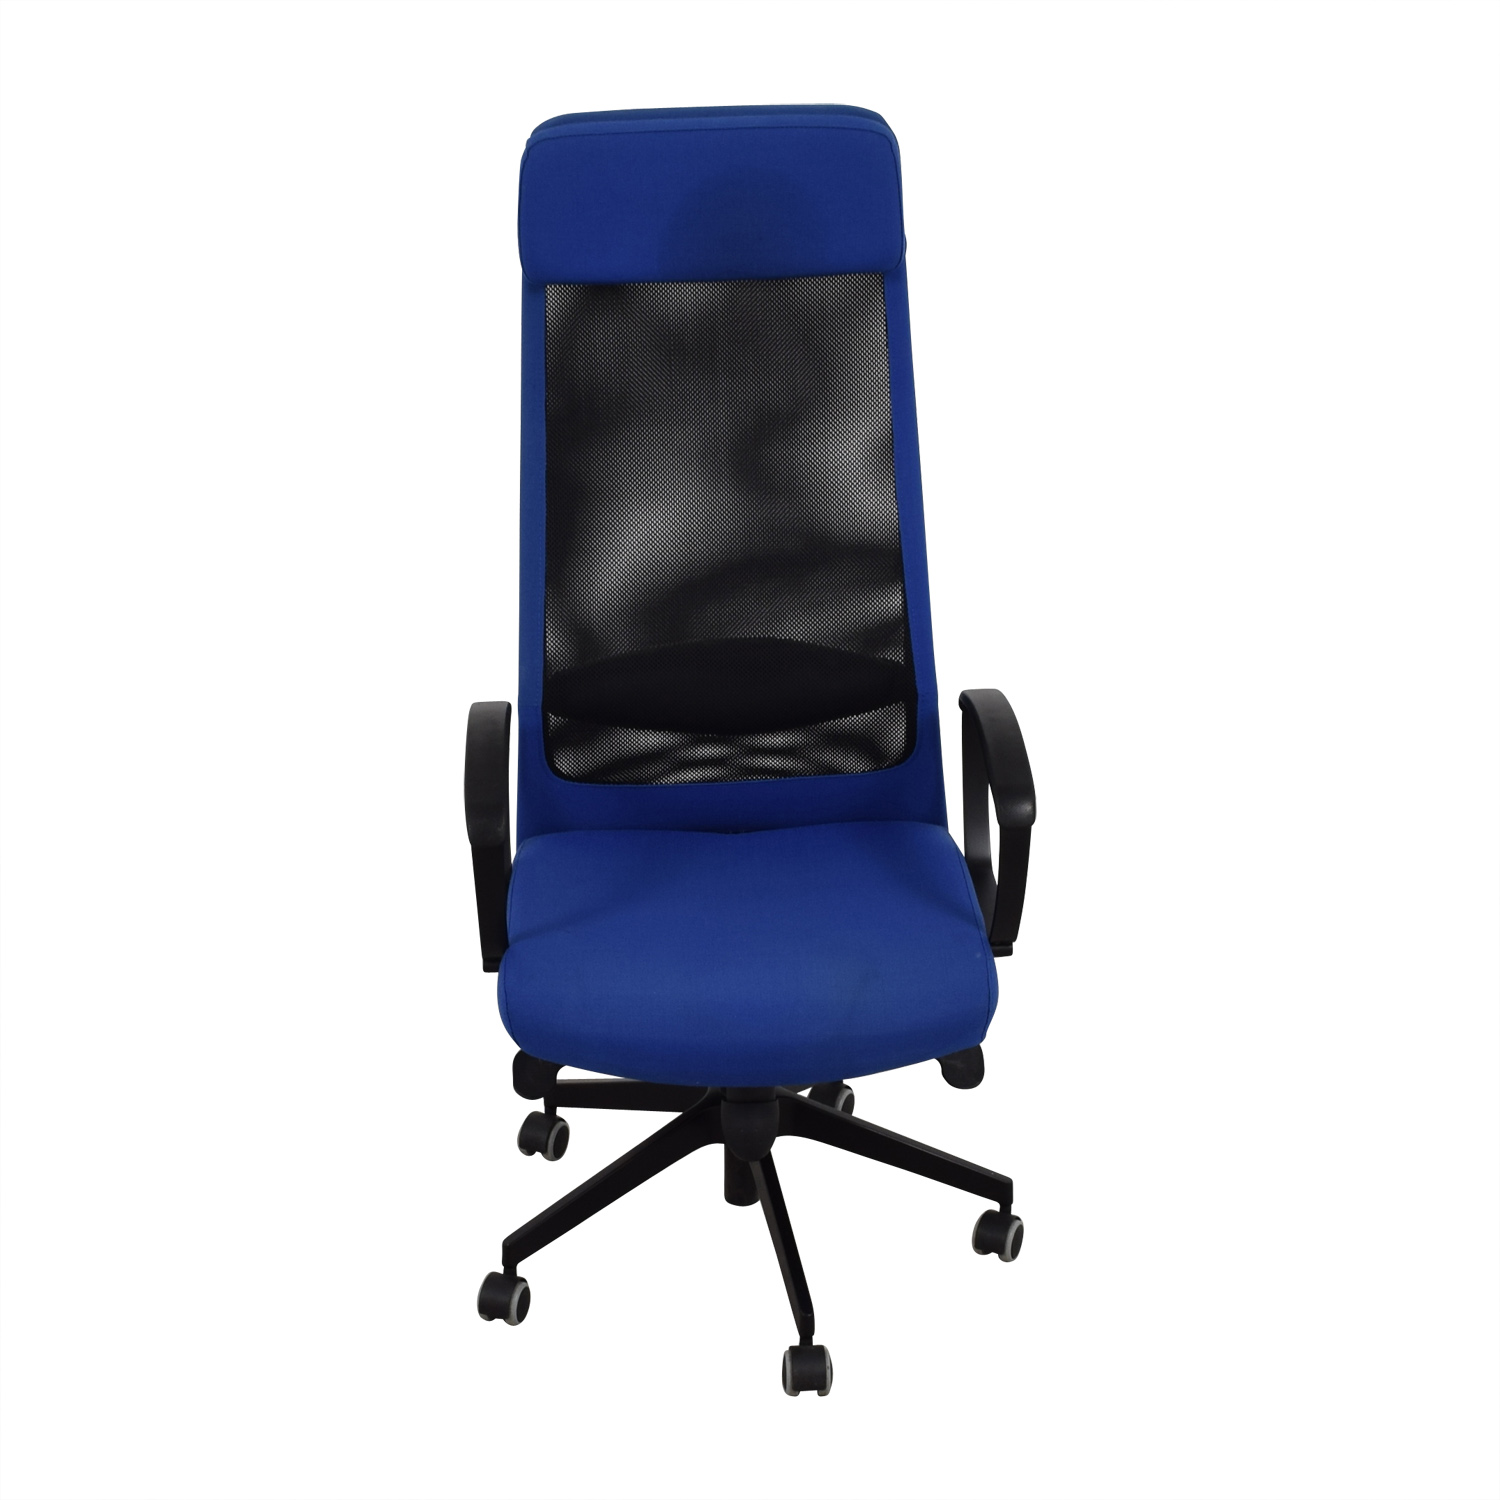 30% OFF IKEA IKEA Markus Blue Swivel Chair Chairs